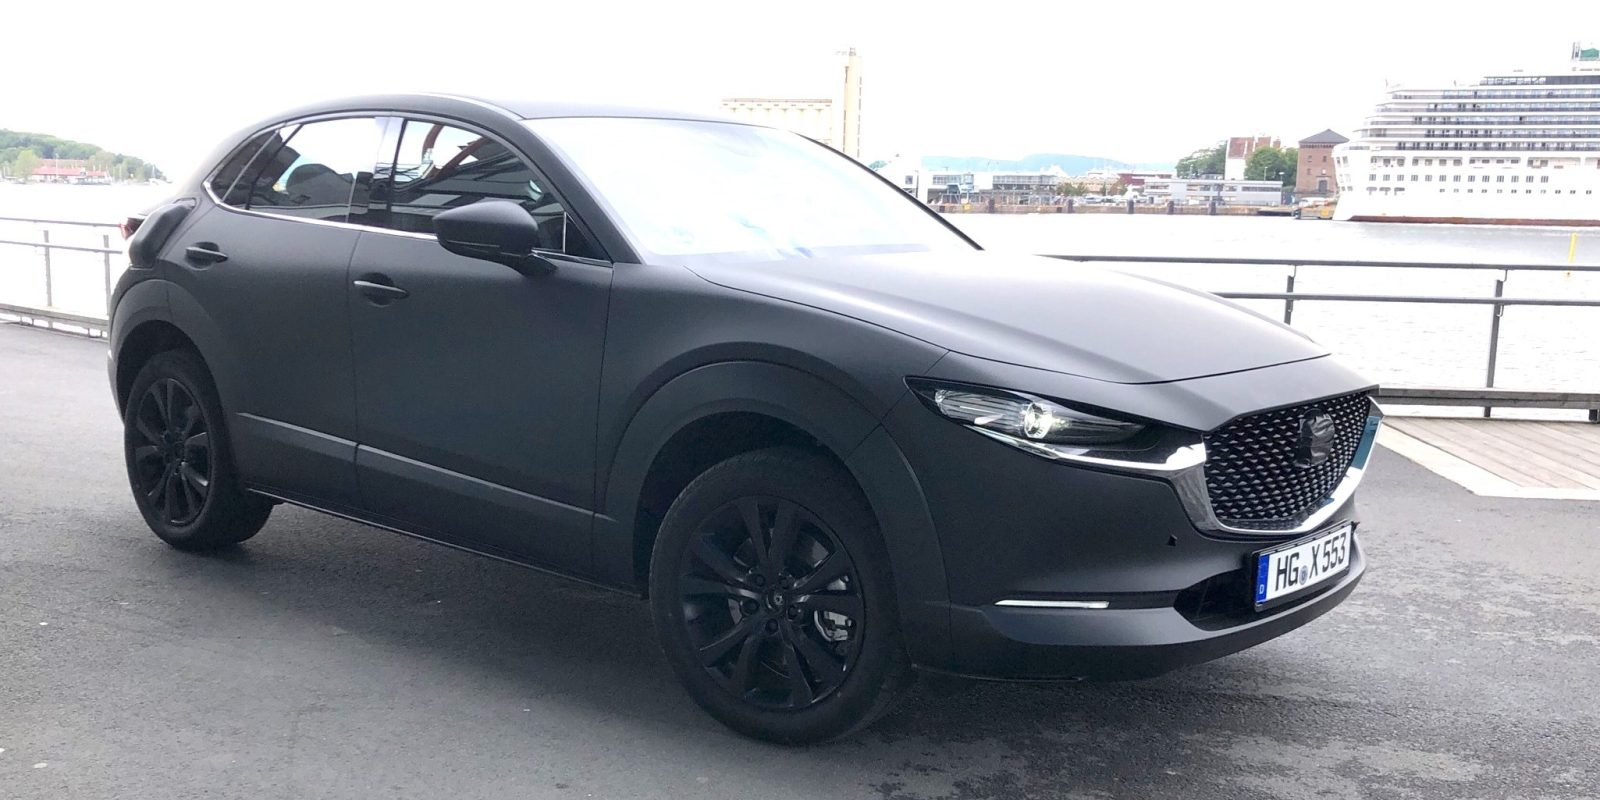 Mazda's first electric car spotted testing, looks like a CX-5